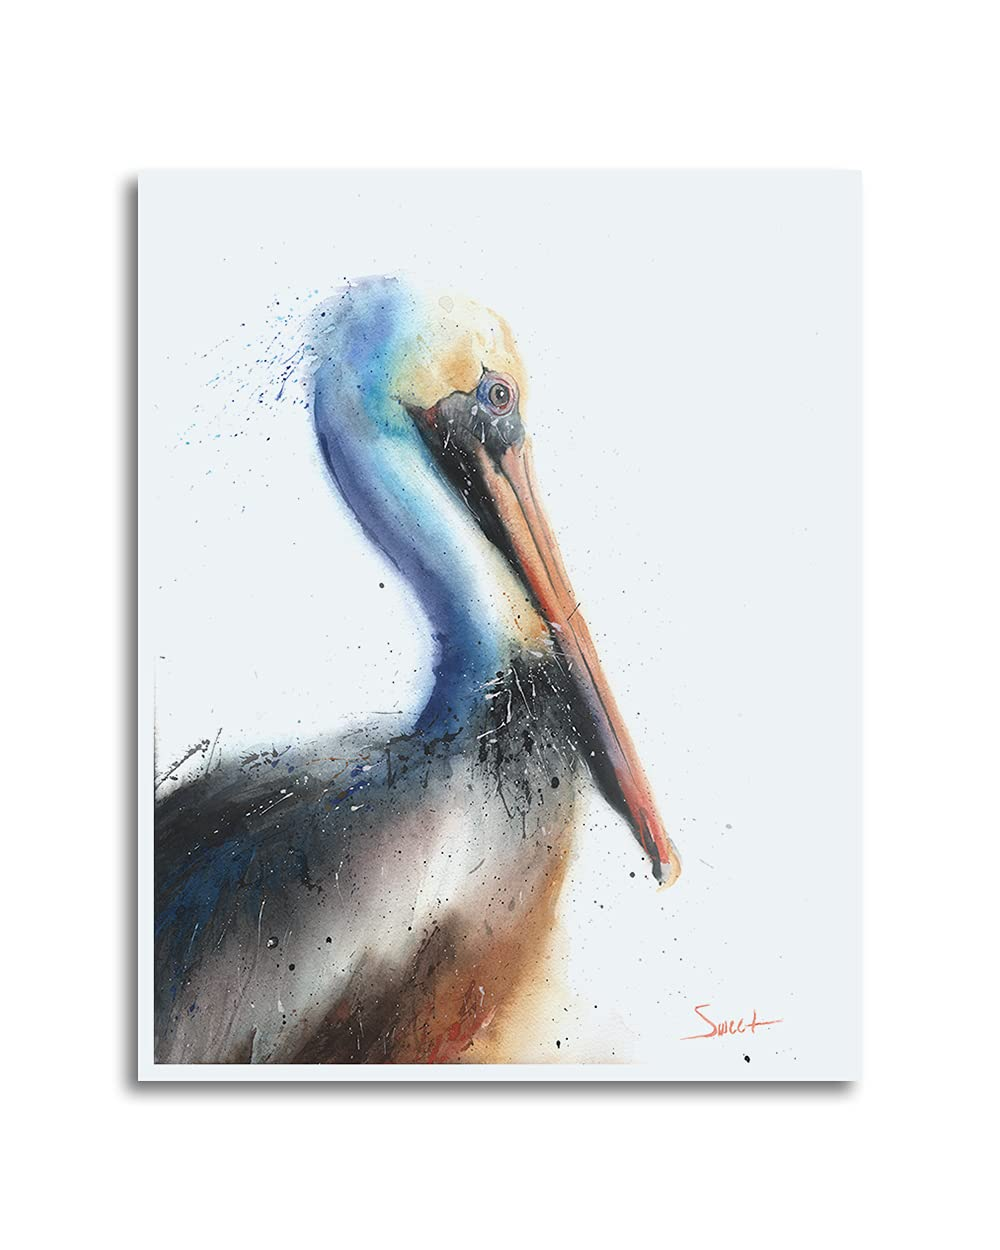 Pelican Watercolor Time sale Print - Max 41% OFF Signed Artist and Dated Eric Sweet